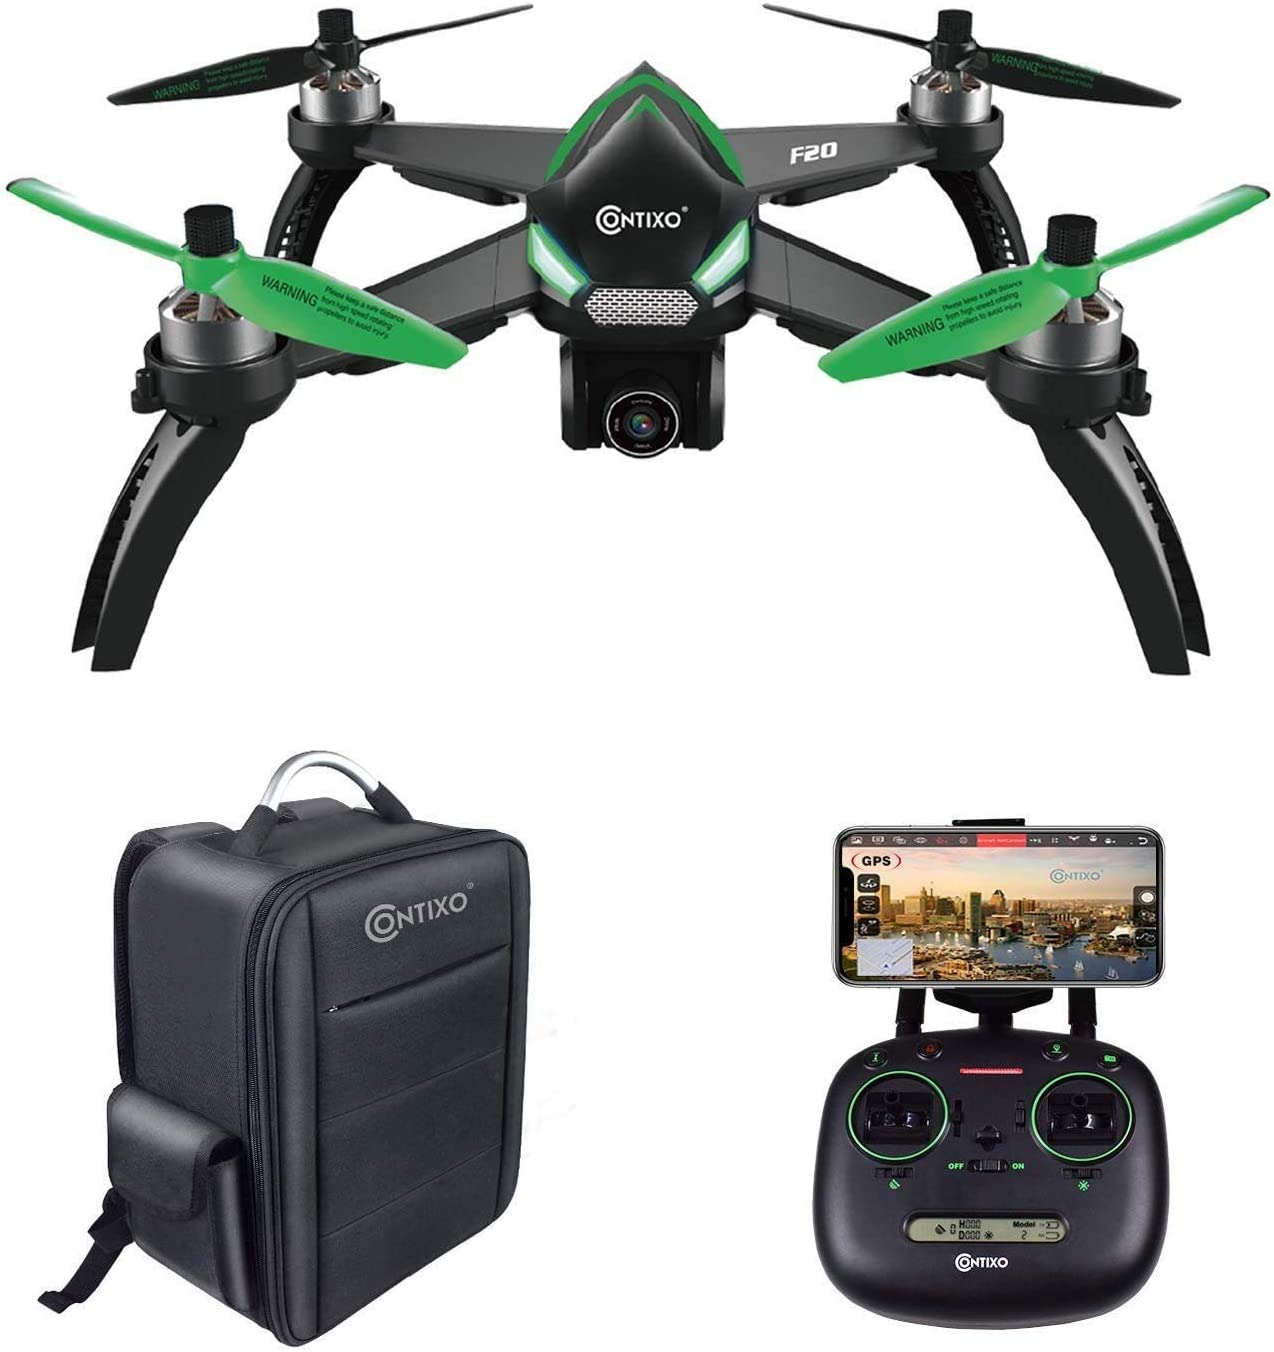 Contixo F20 is at #8 for best drones under 300 dollars